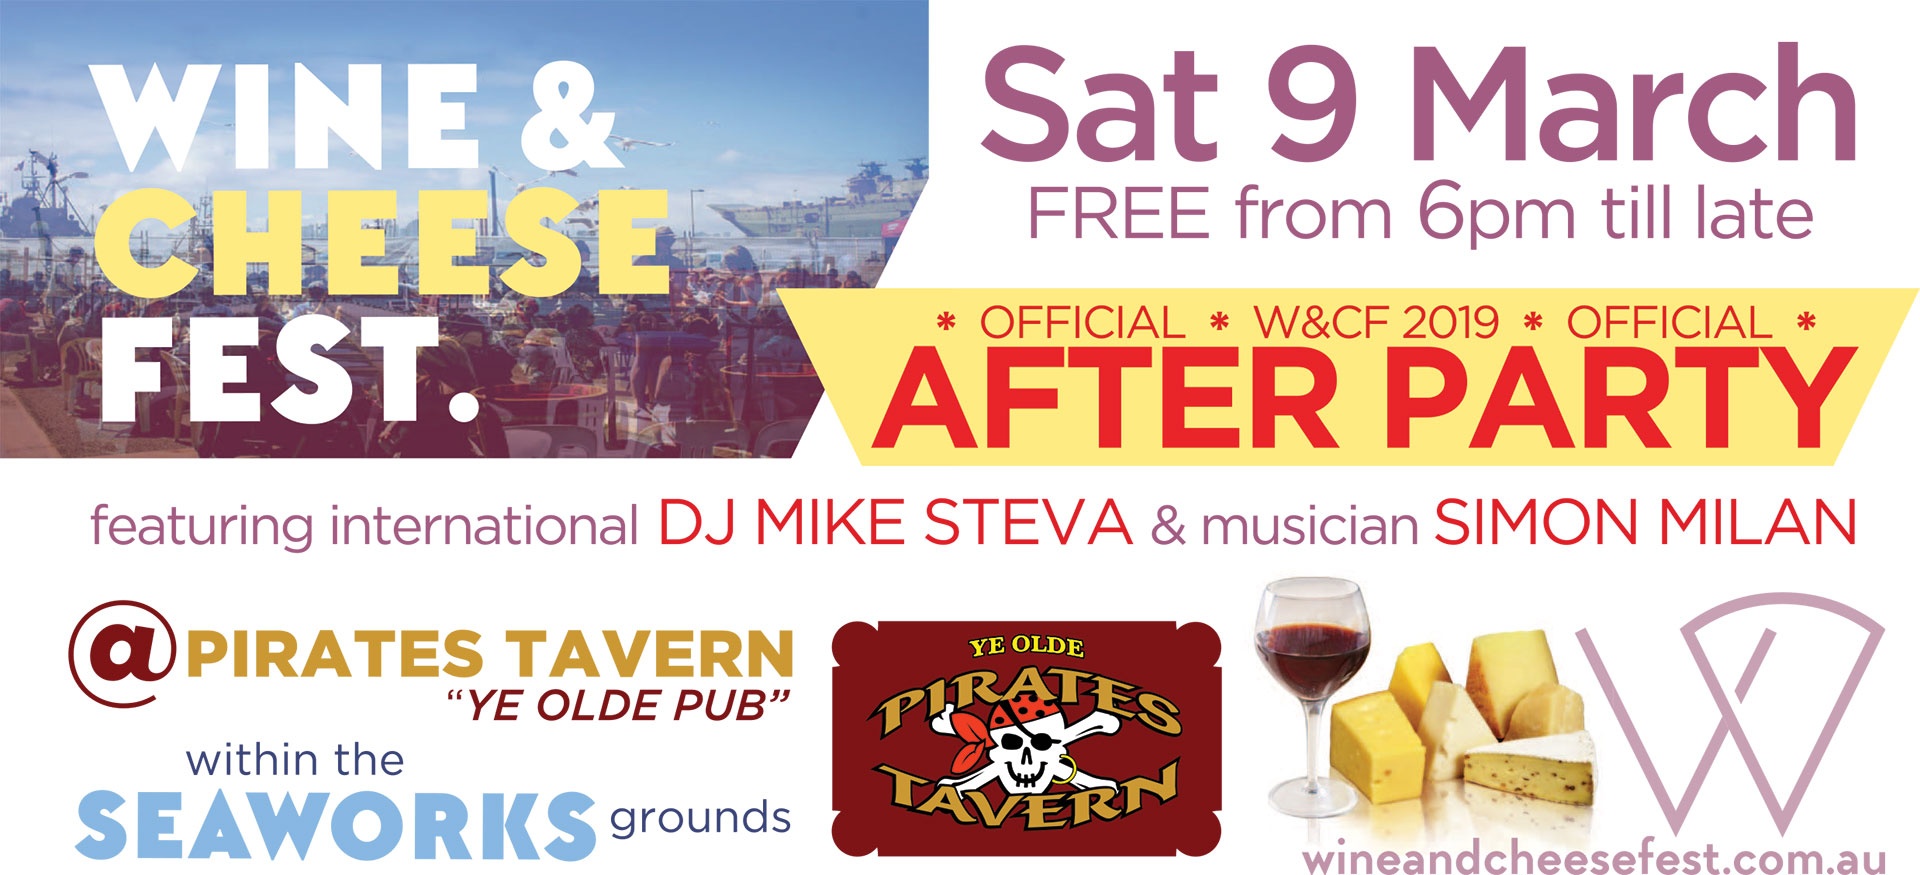 Live Music and DJ's - Wine and Cheese Fest